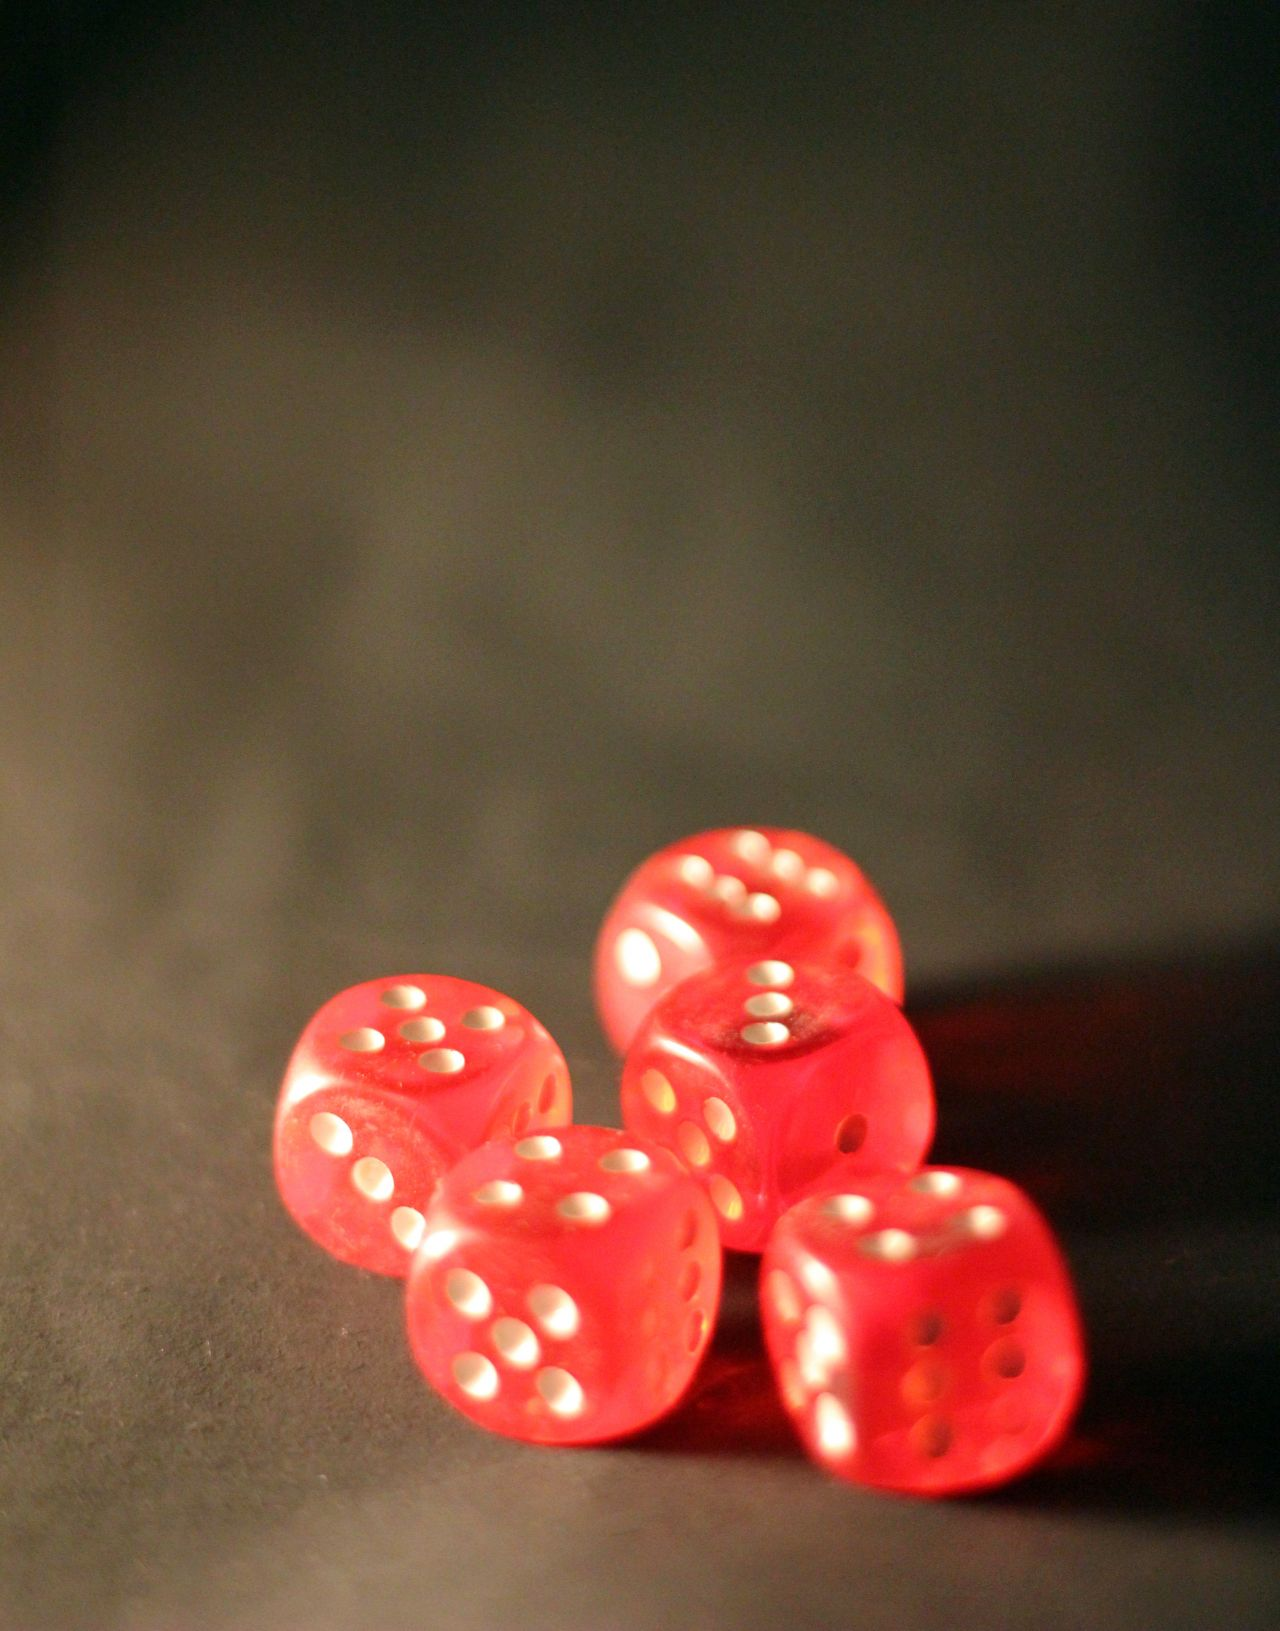 """Free photo """"Red Colored Dice"""""""